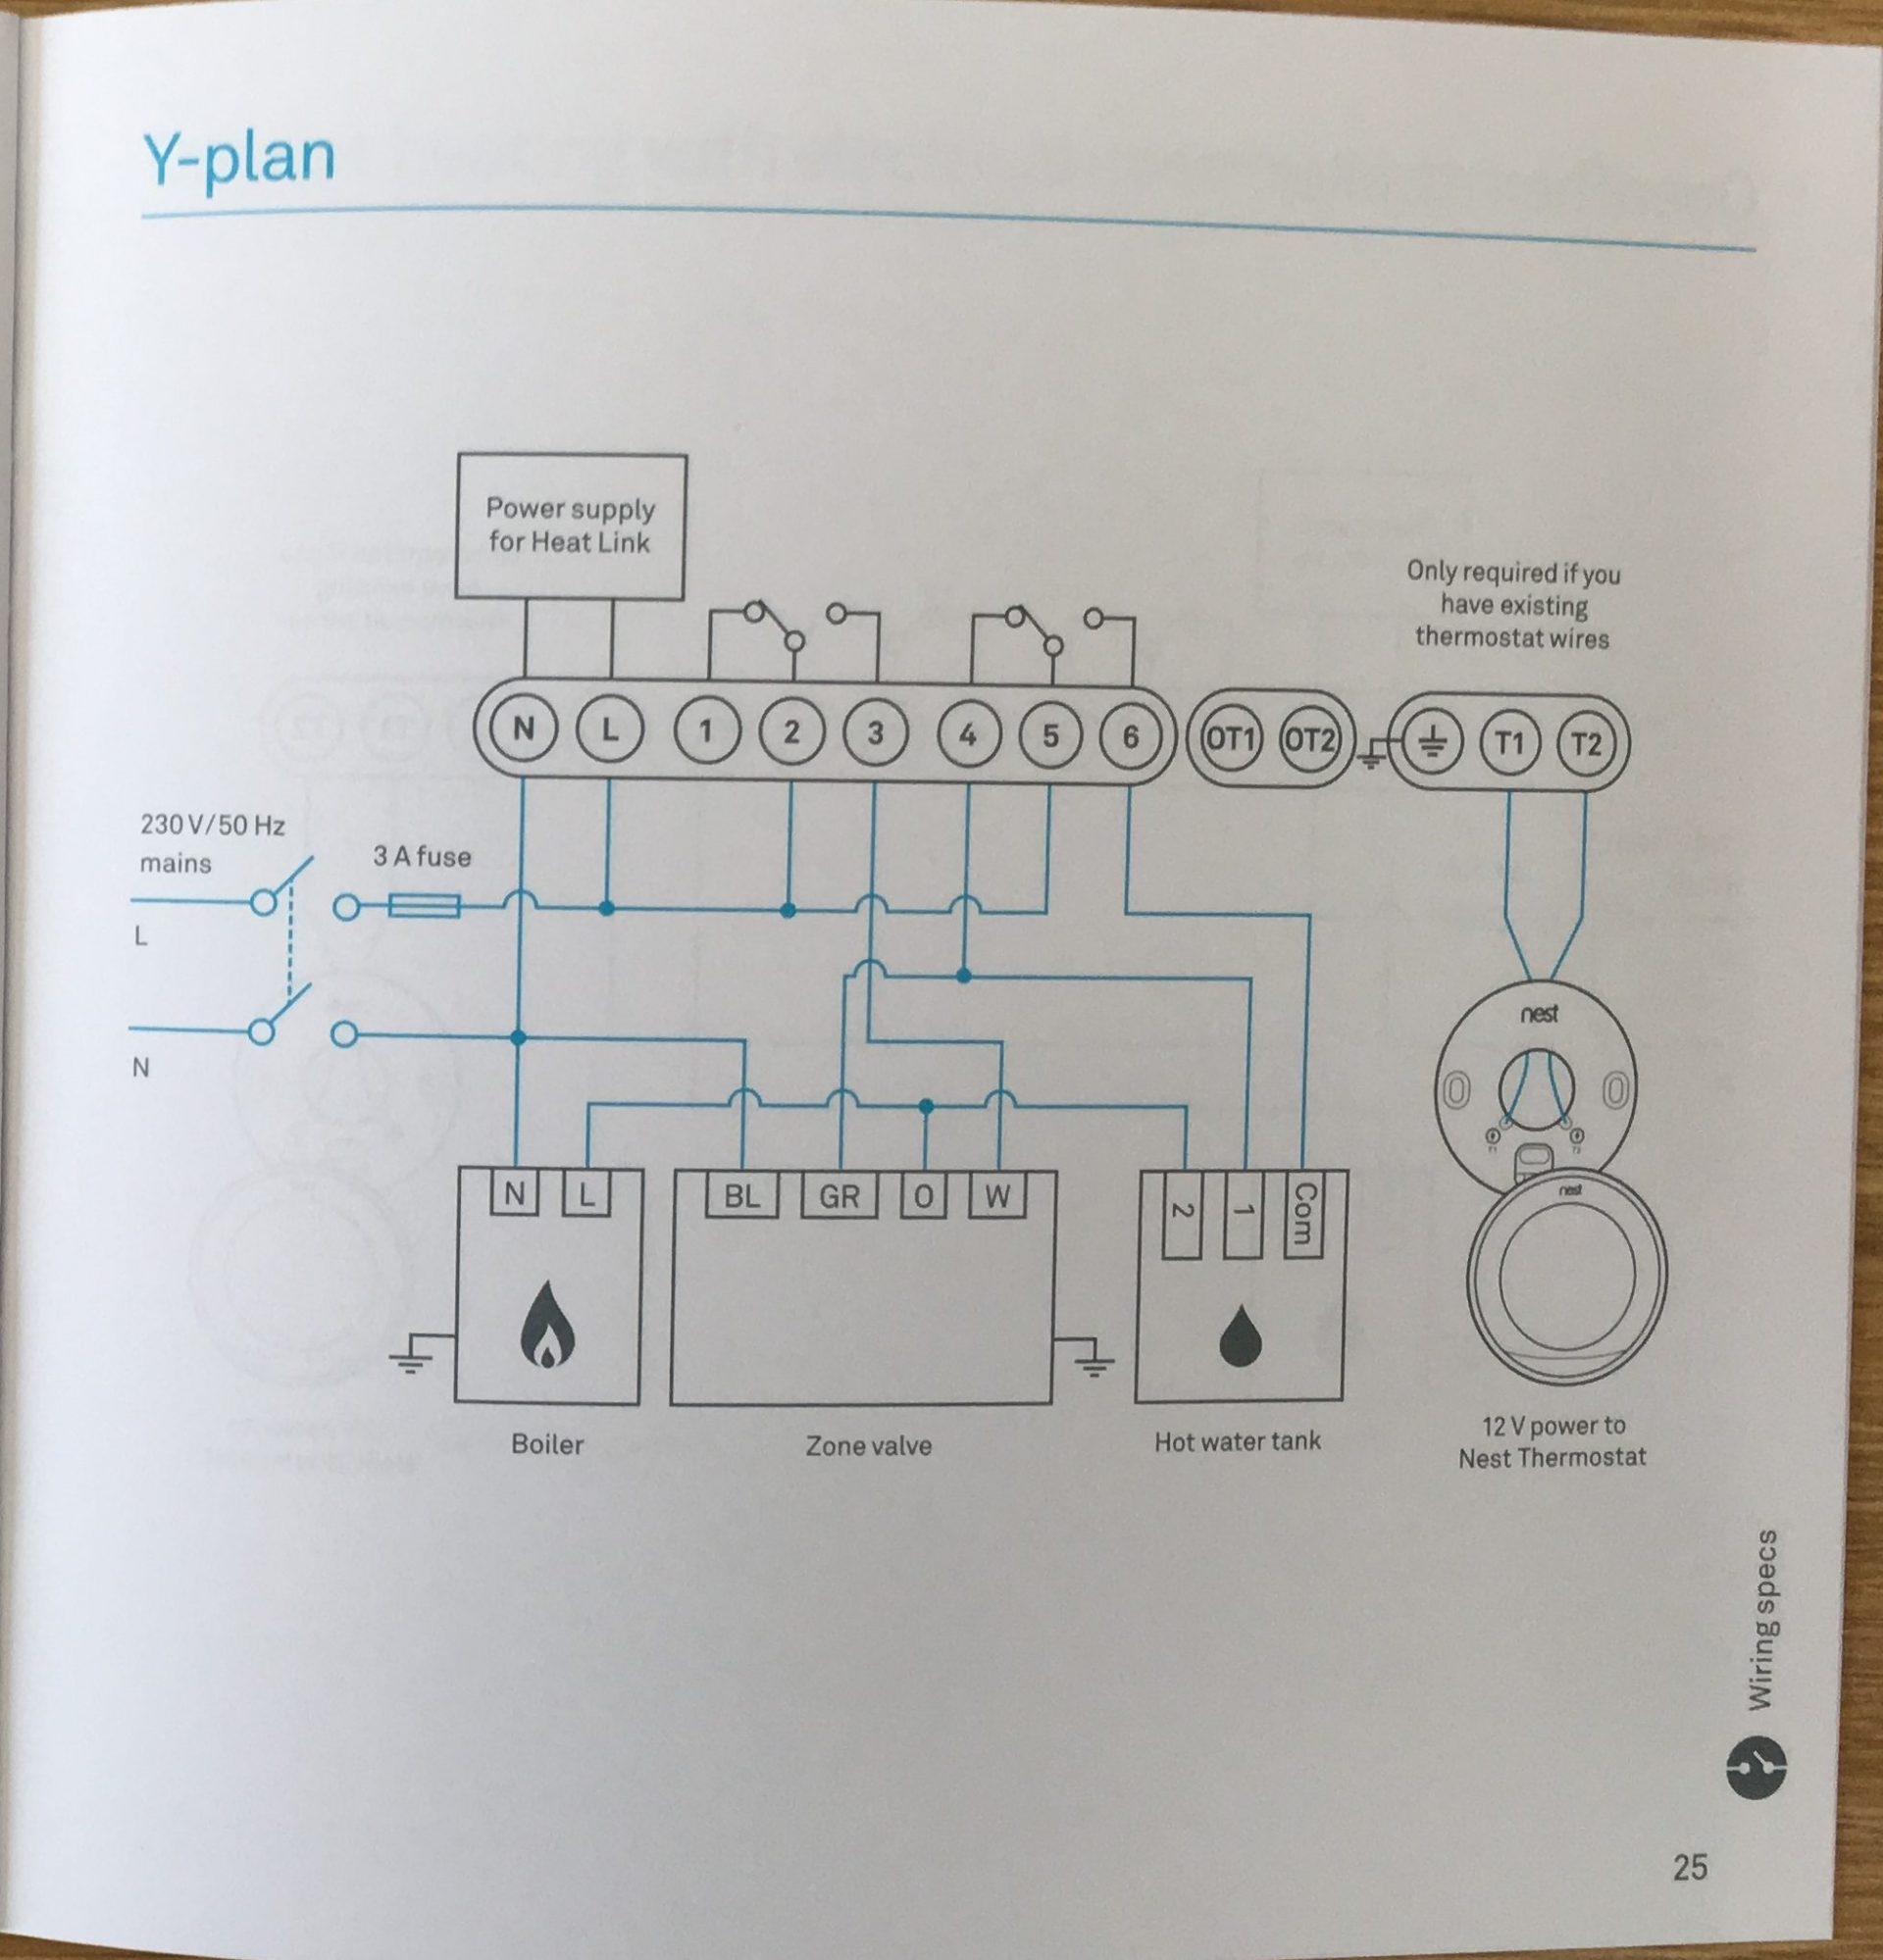 How To Install The Nest Learning Thermostat (3Rd Gen) In A Y-Plan - Nest 3Rd Generation Wiring Diagram Uk